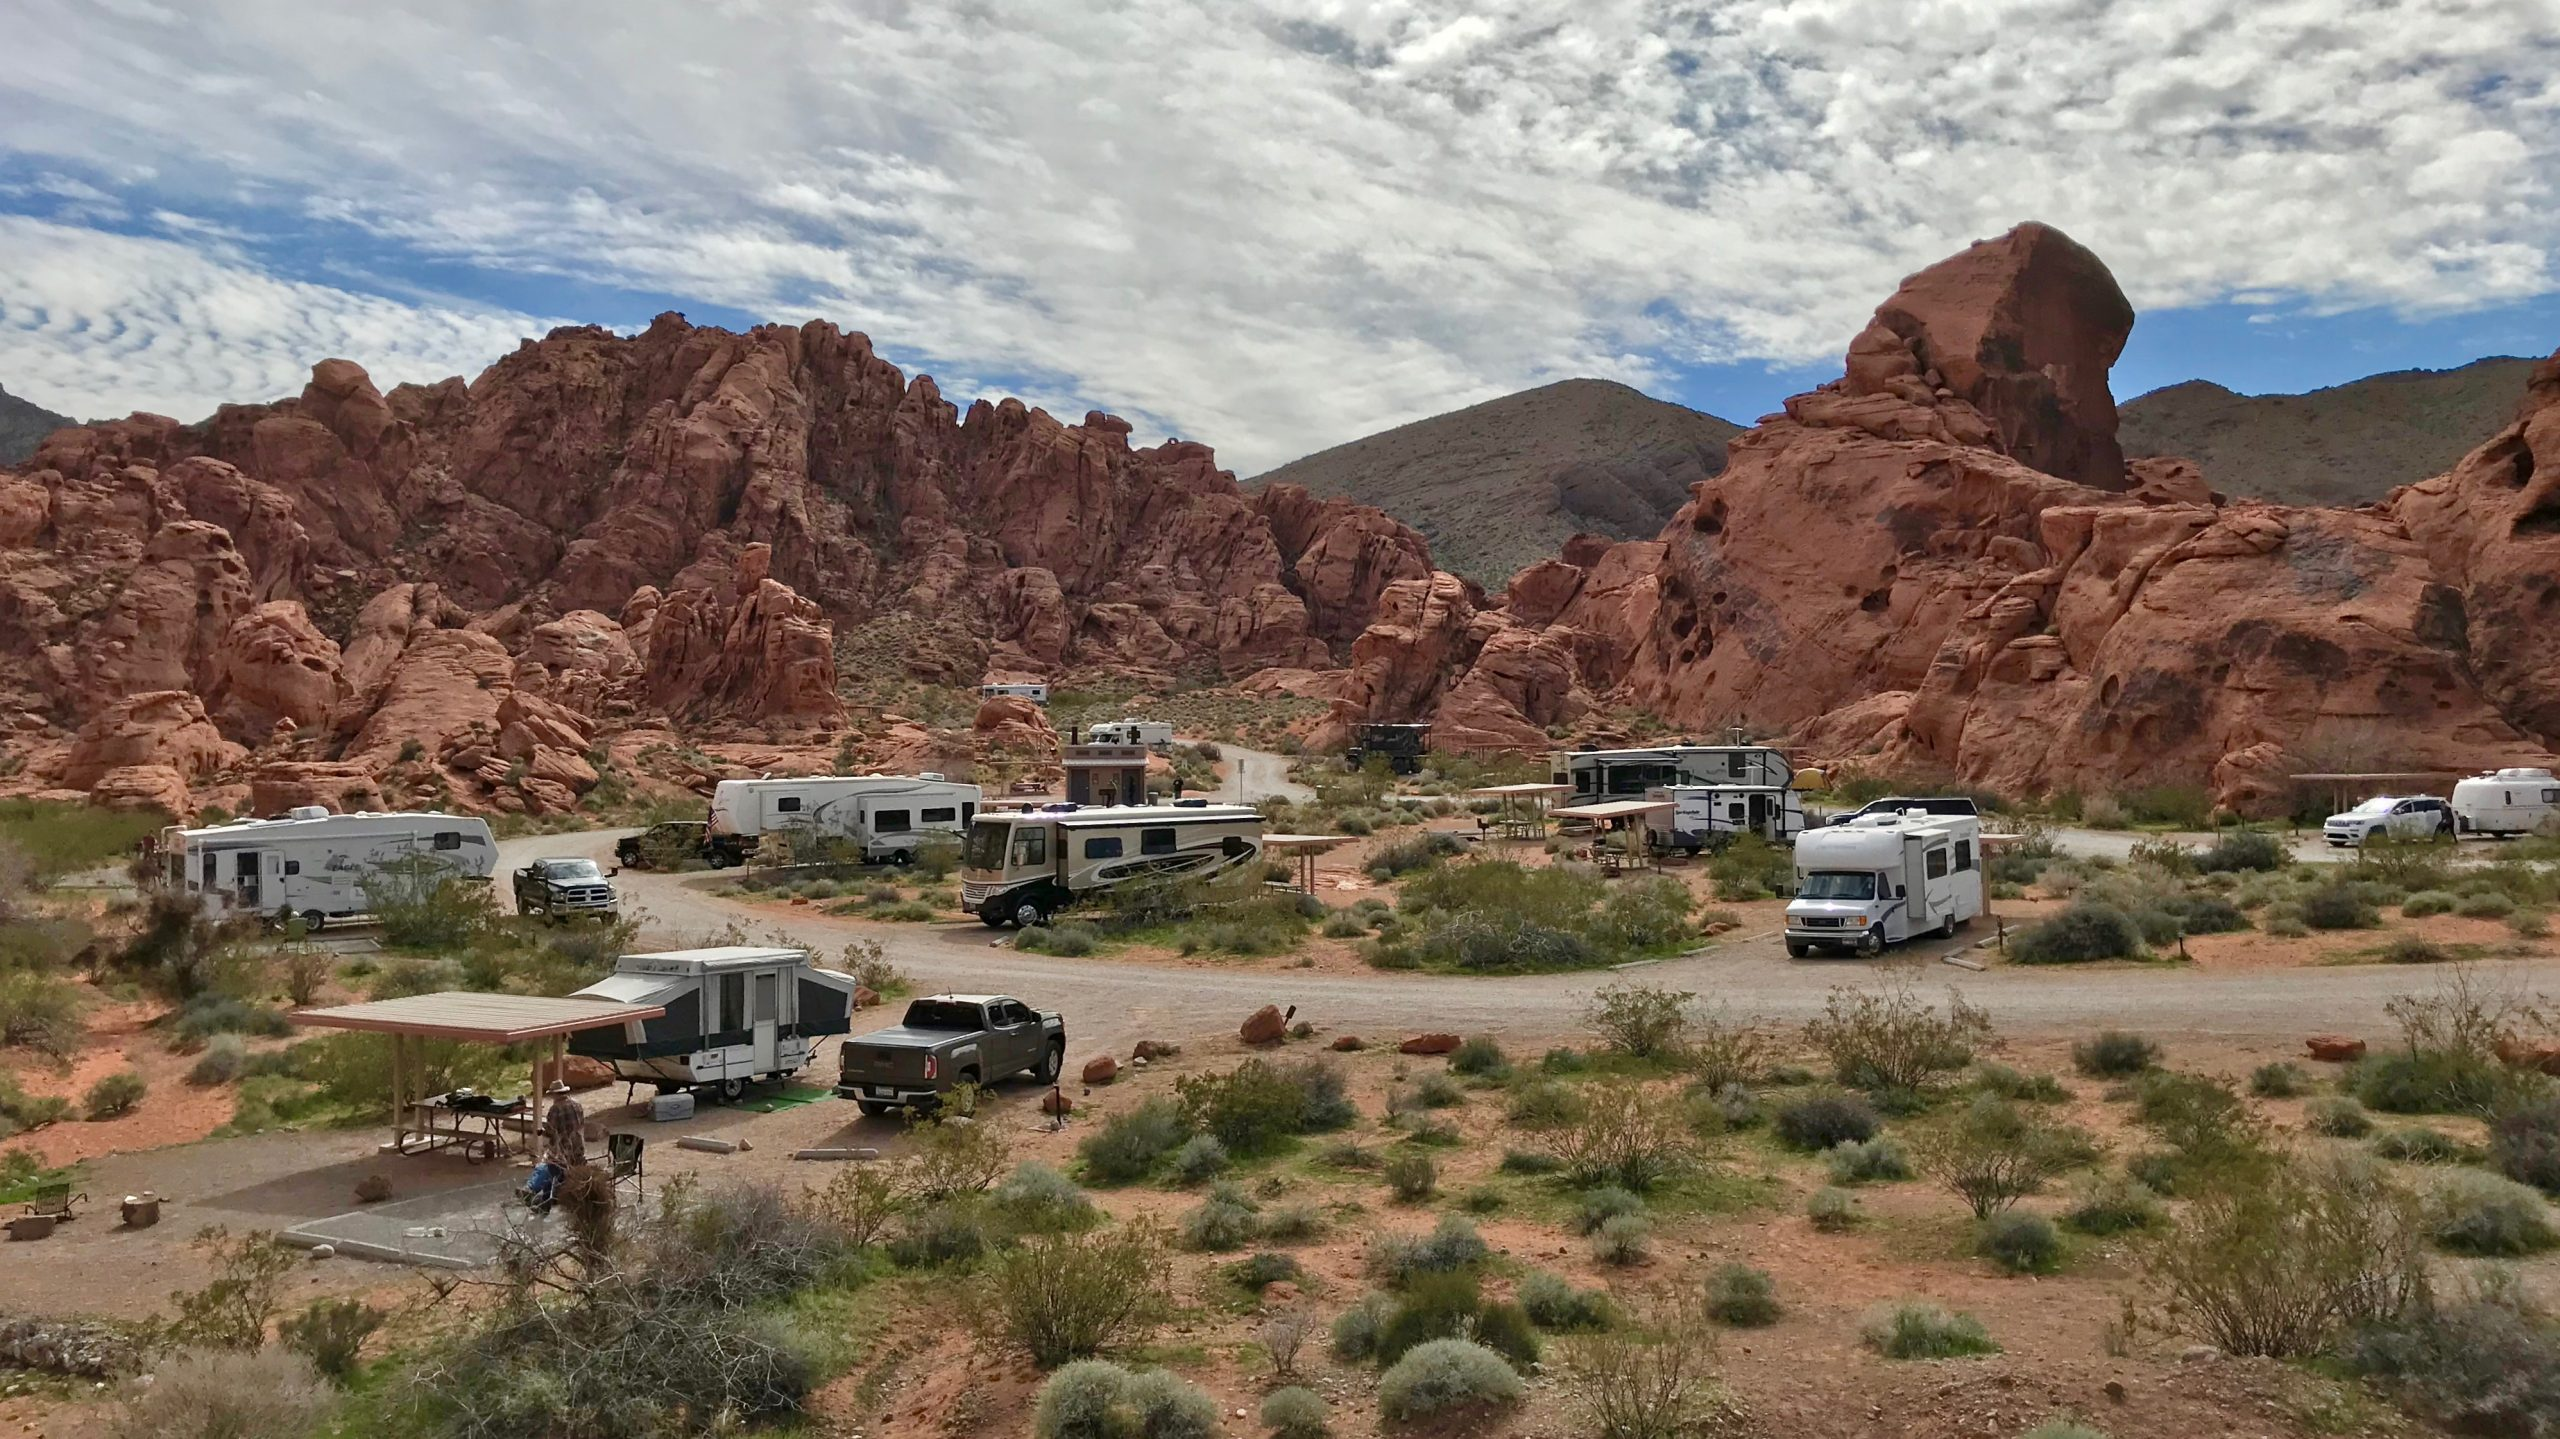 Arch Rock Campground at Valley of Fire State Park in Nevada